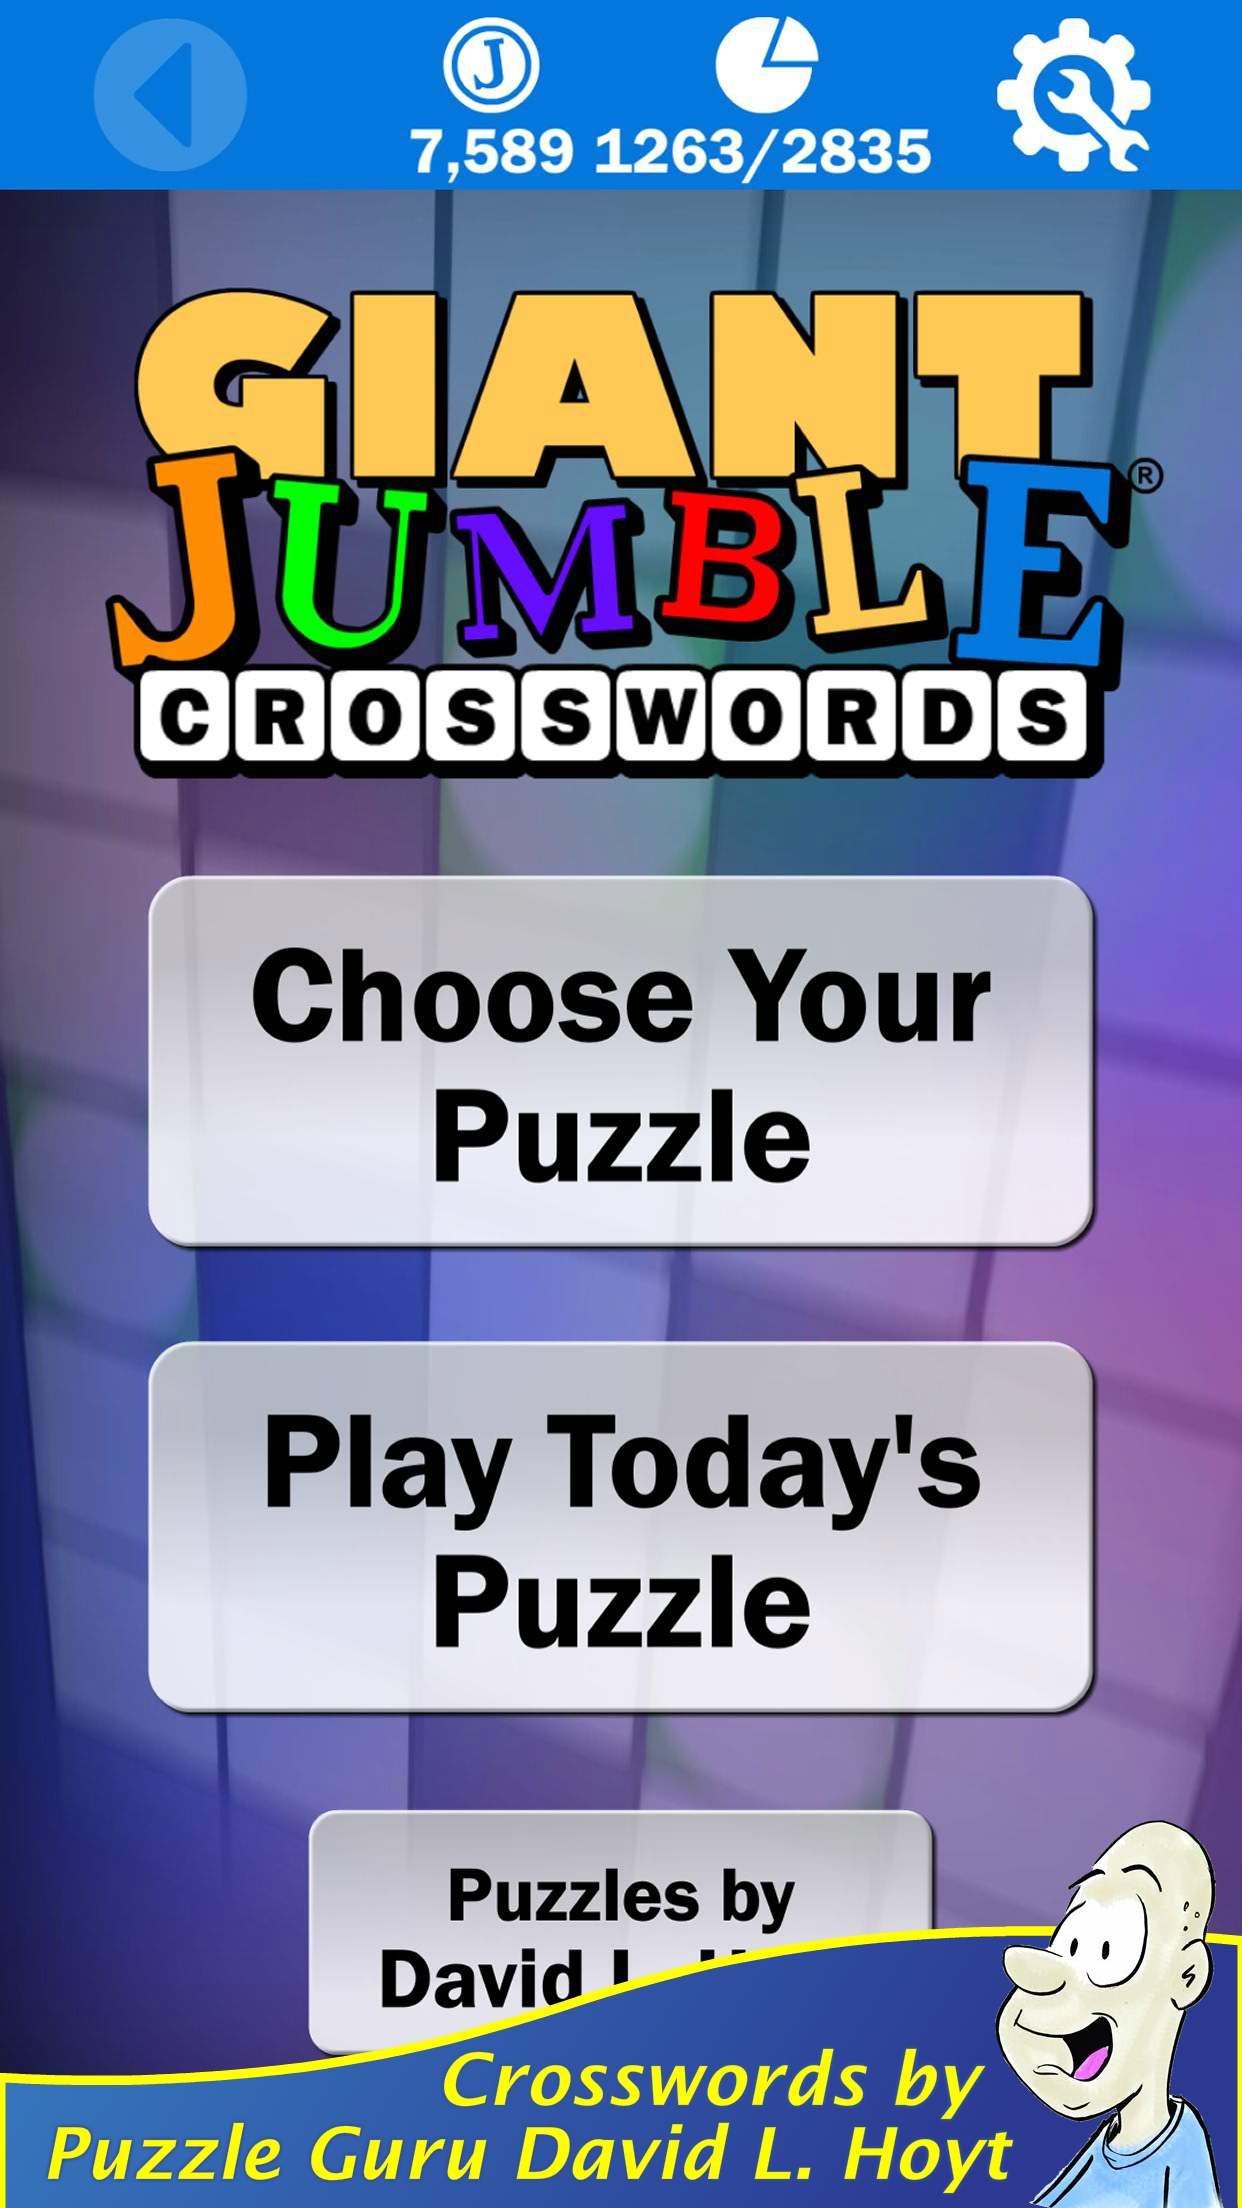 America's Favorite Puzzle Creator has a New Jumble Crosswords App Image